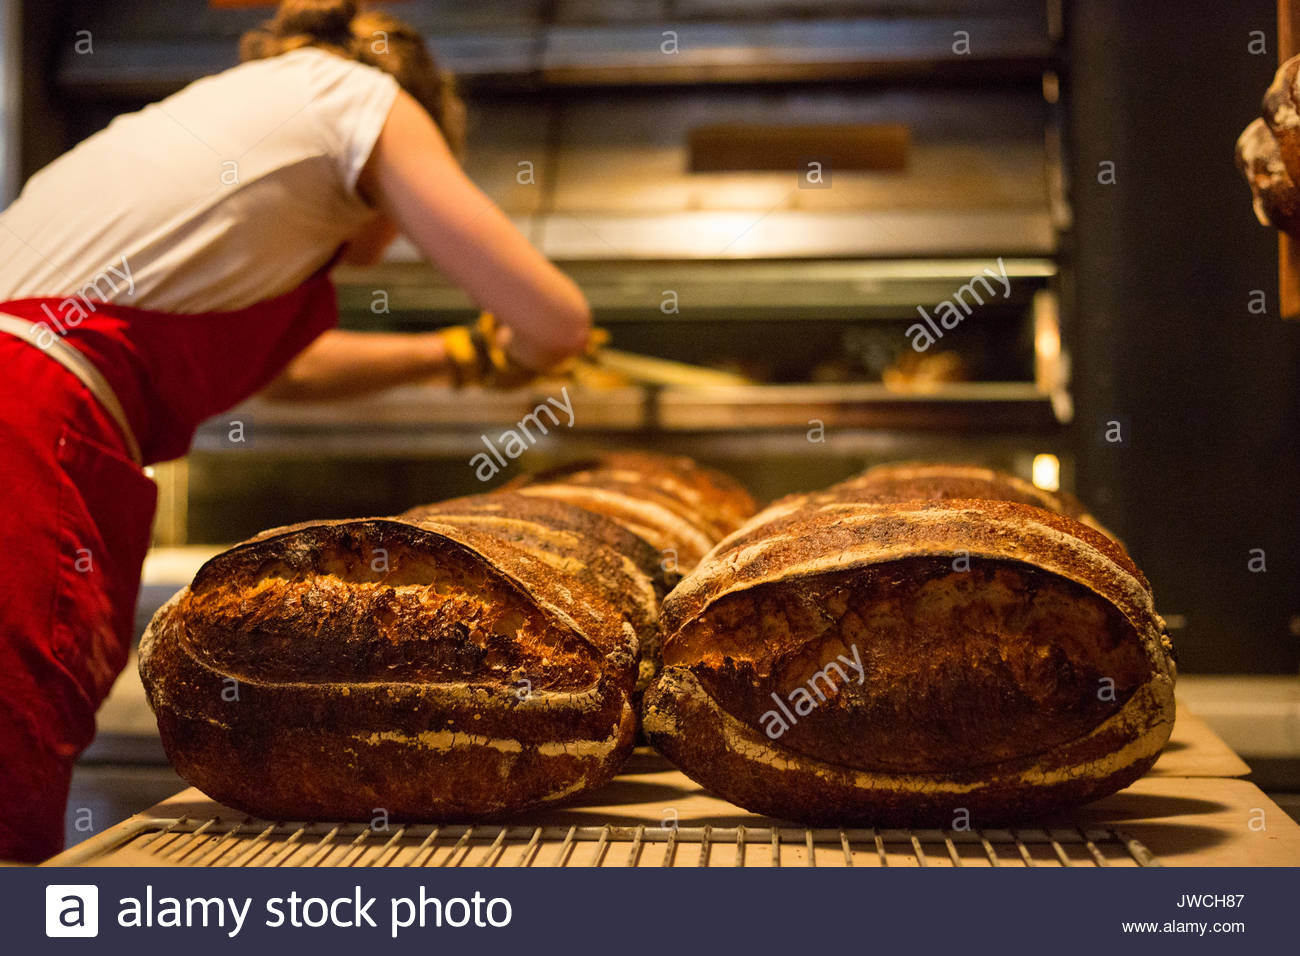 An artisan baker removes fresh loaves of bread from an industrial oven. - Stock Image